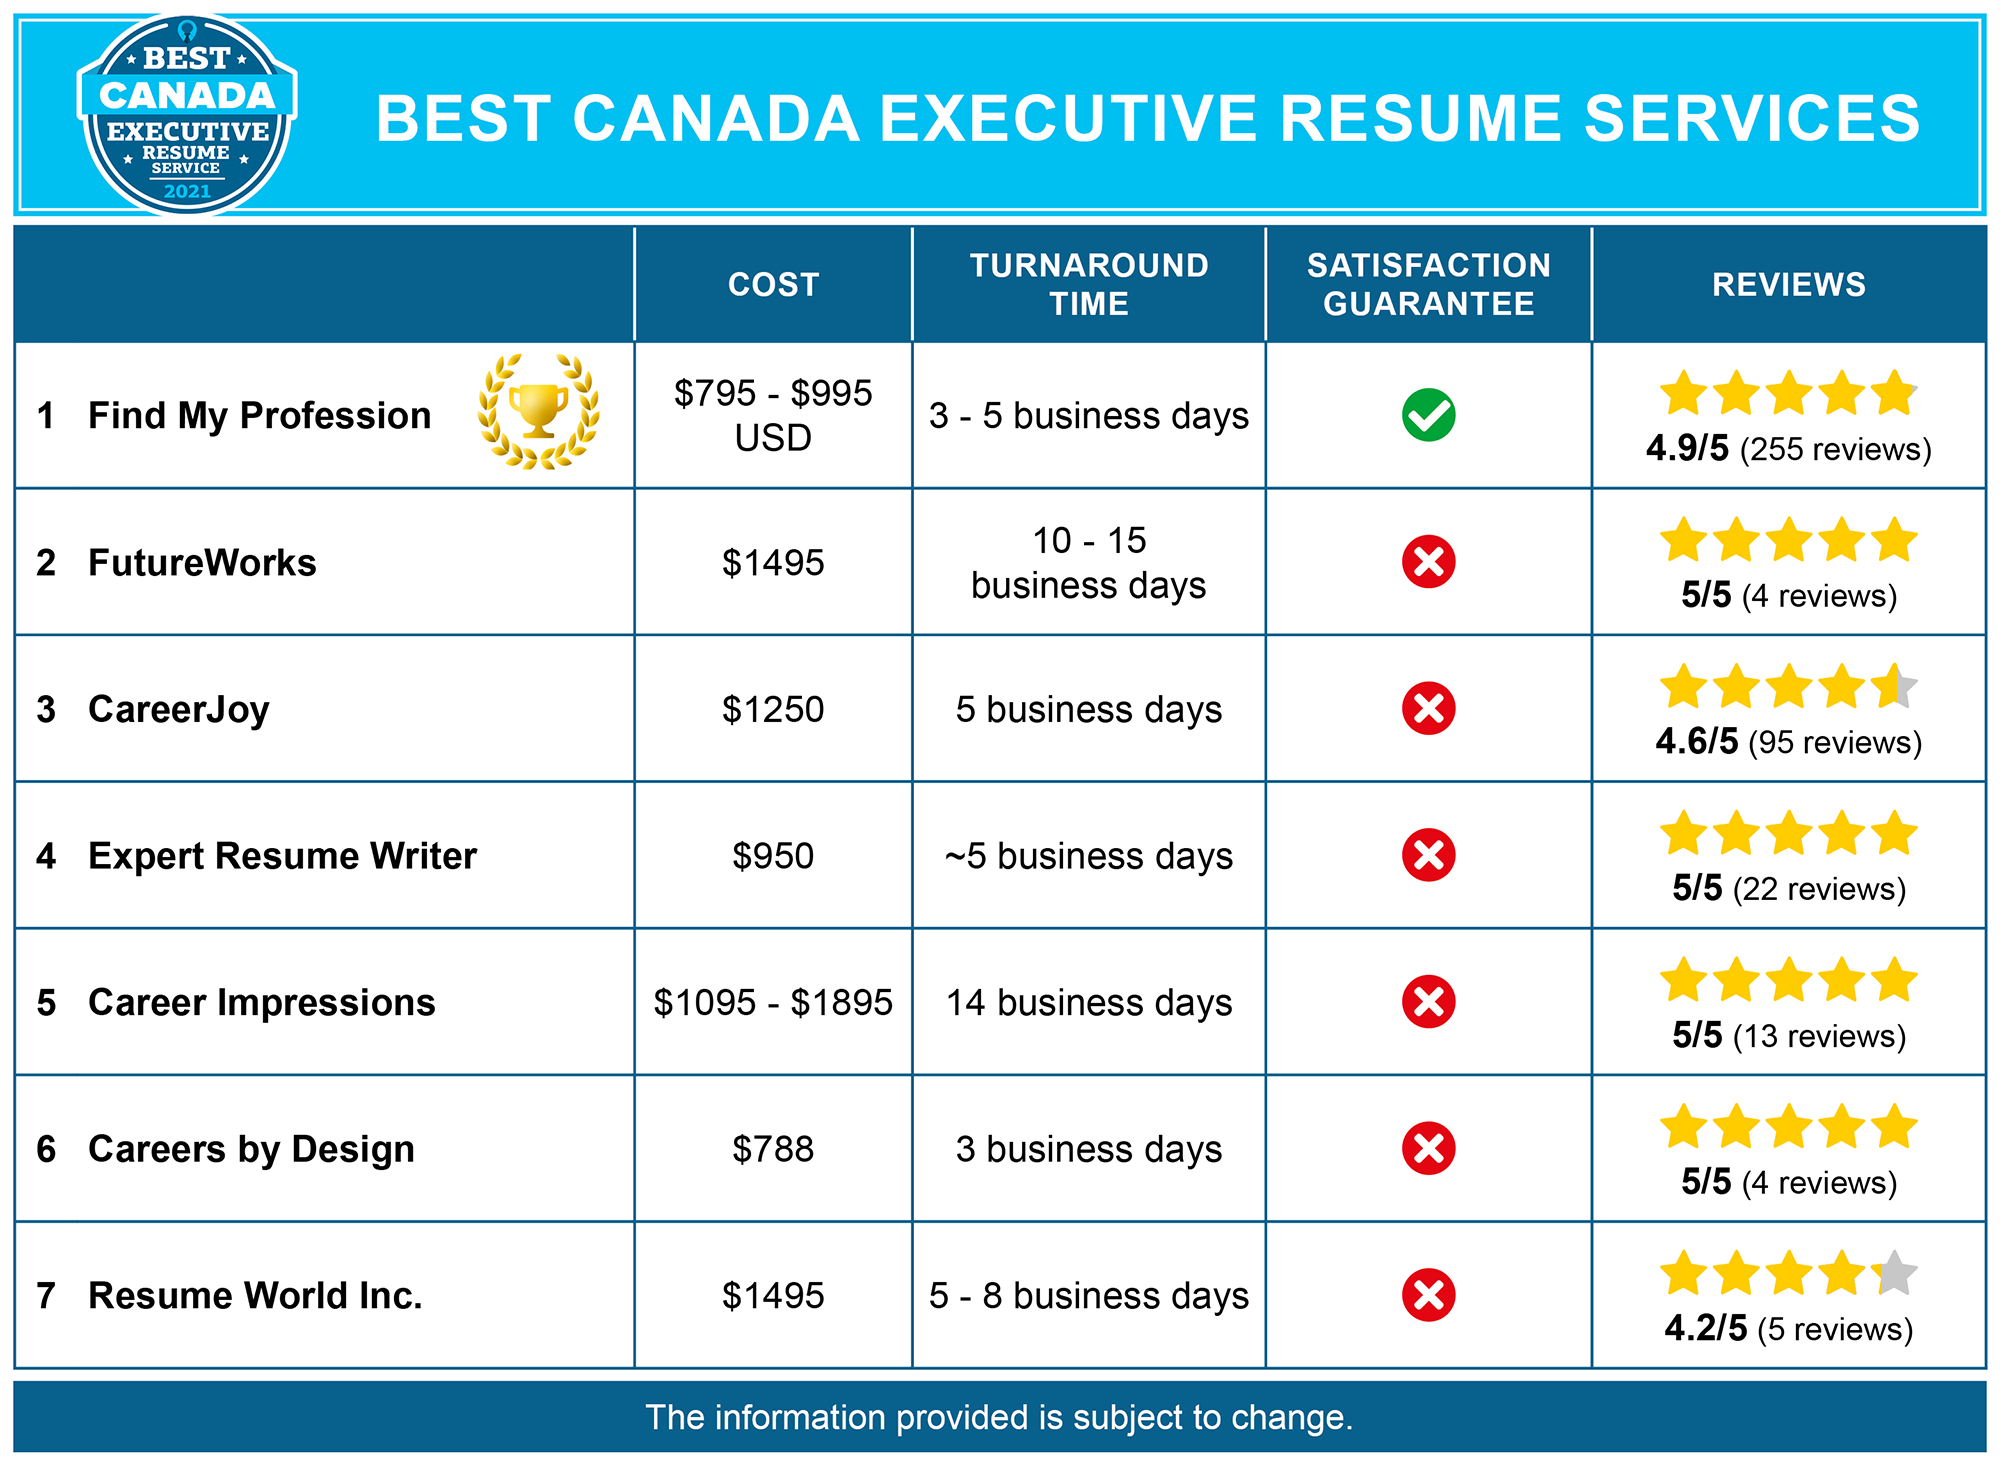 Best Canada Executive Resume Services